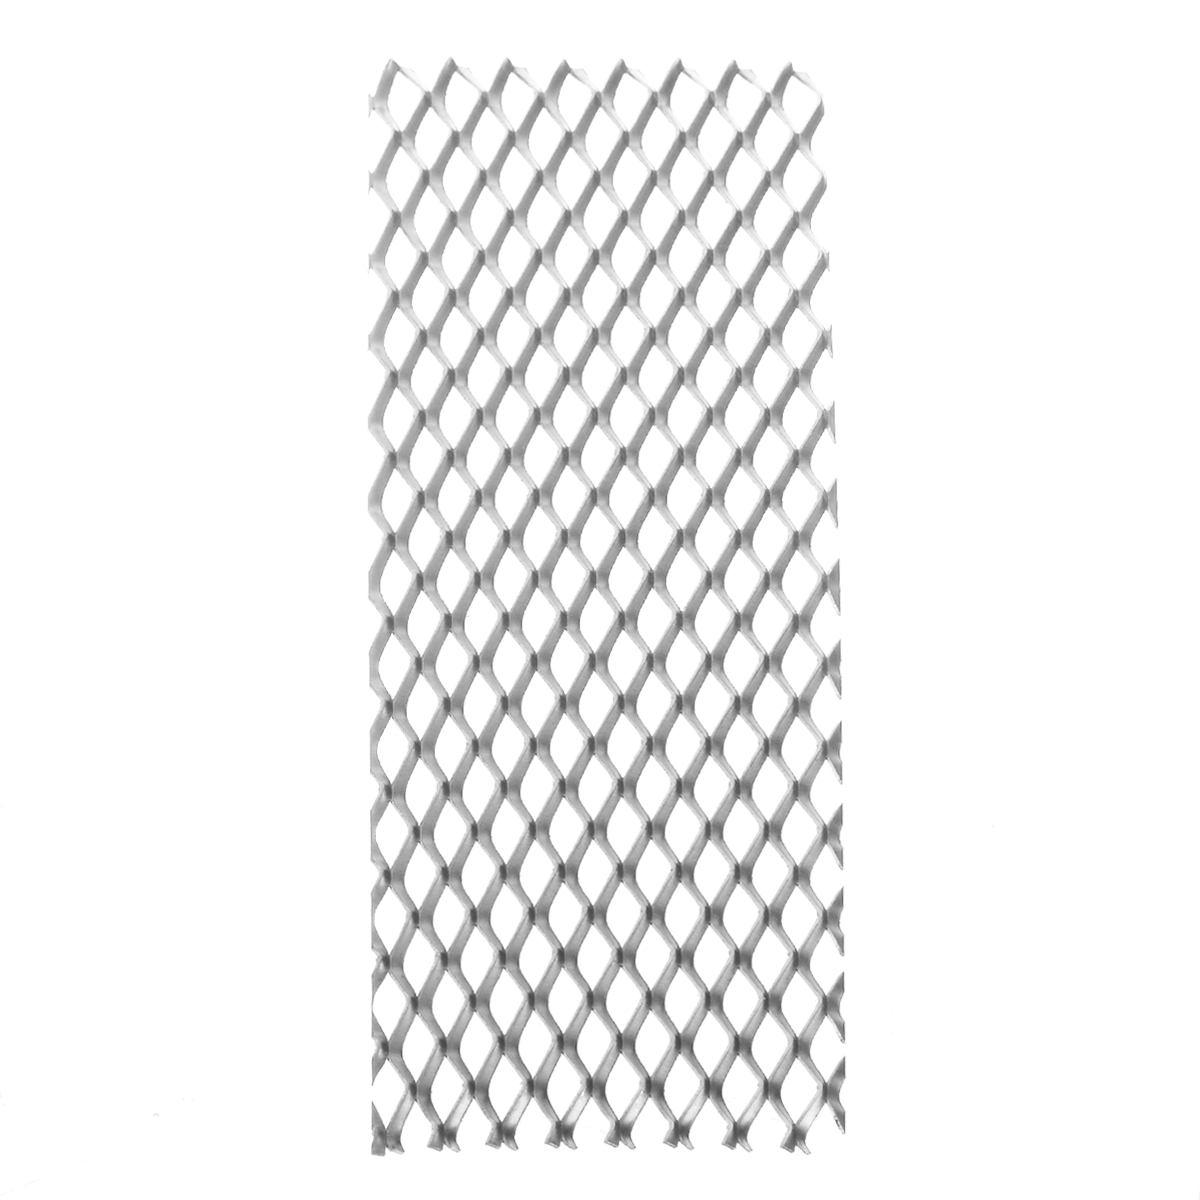 1pc Durable Titanium Mesh Sheet Heat Corrosion Resistance Silver Perforated Expanded Plate 50mm*165mm For Electrolysis